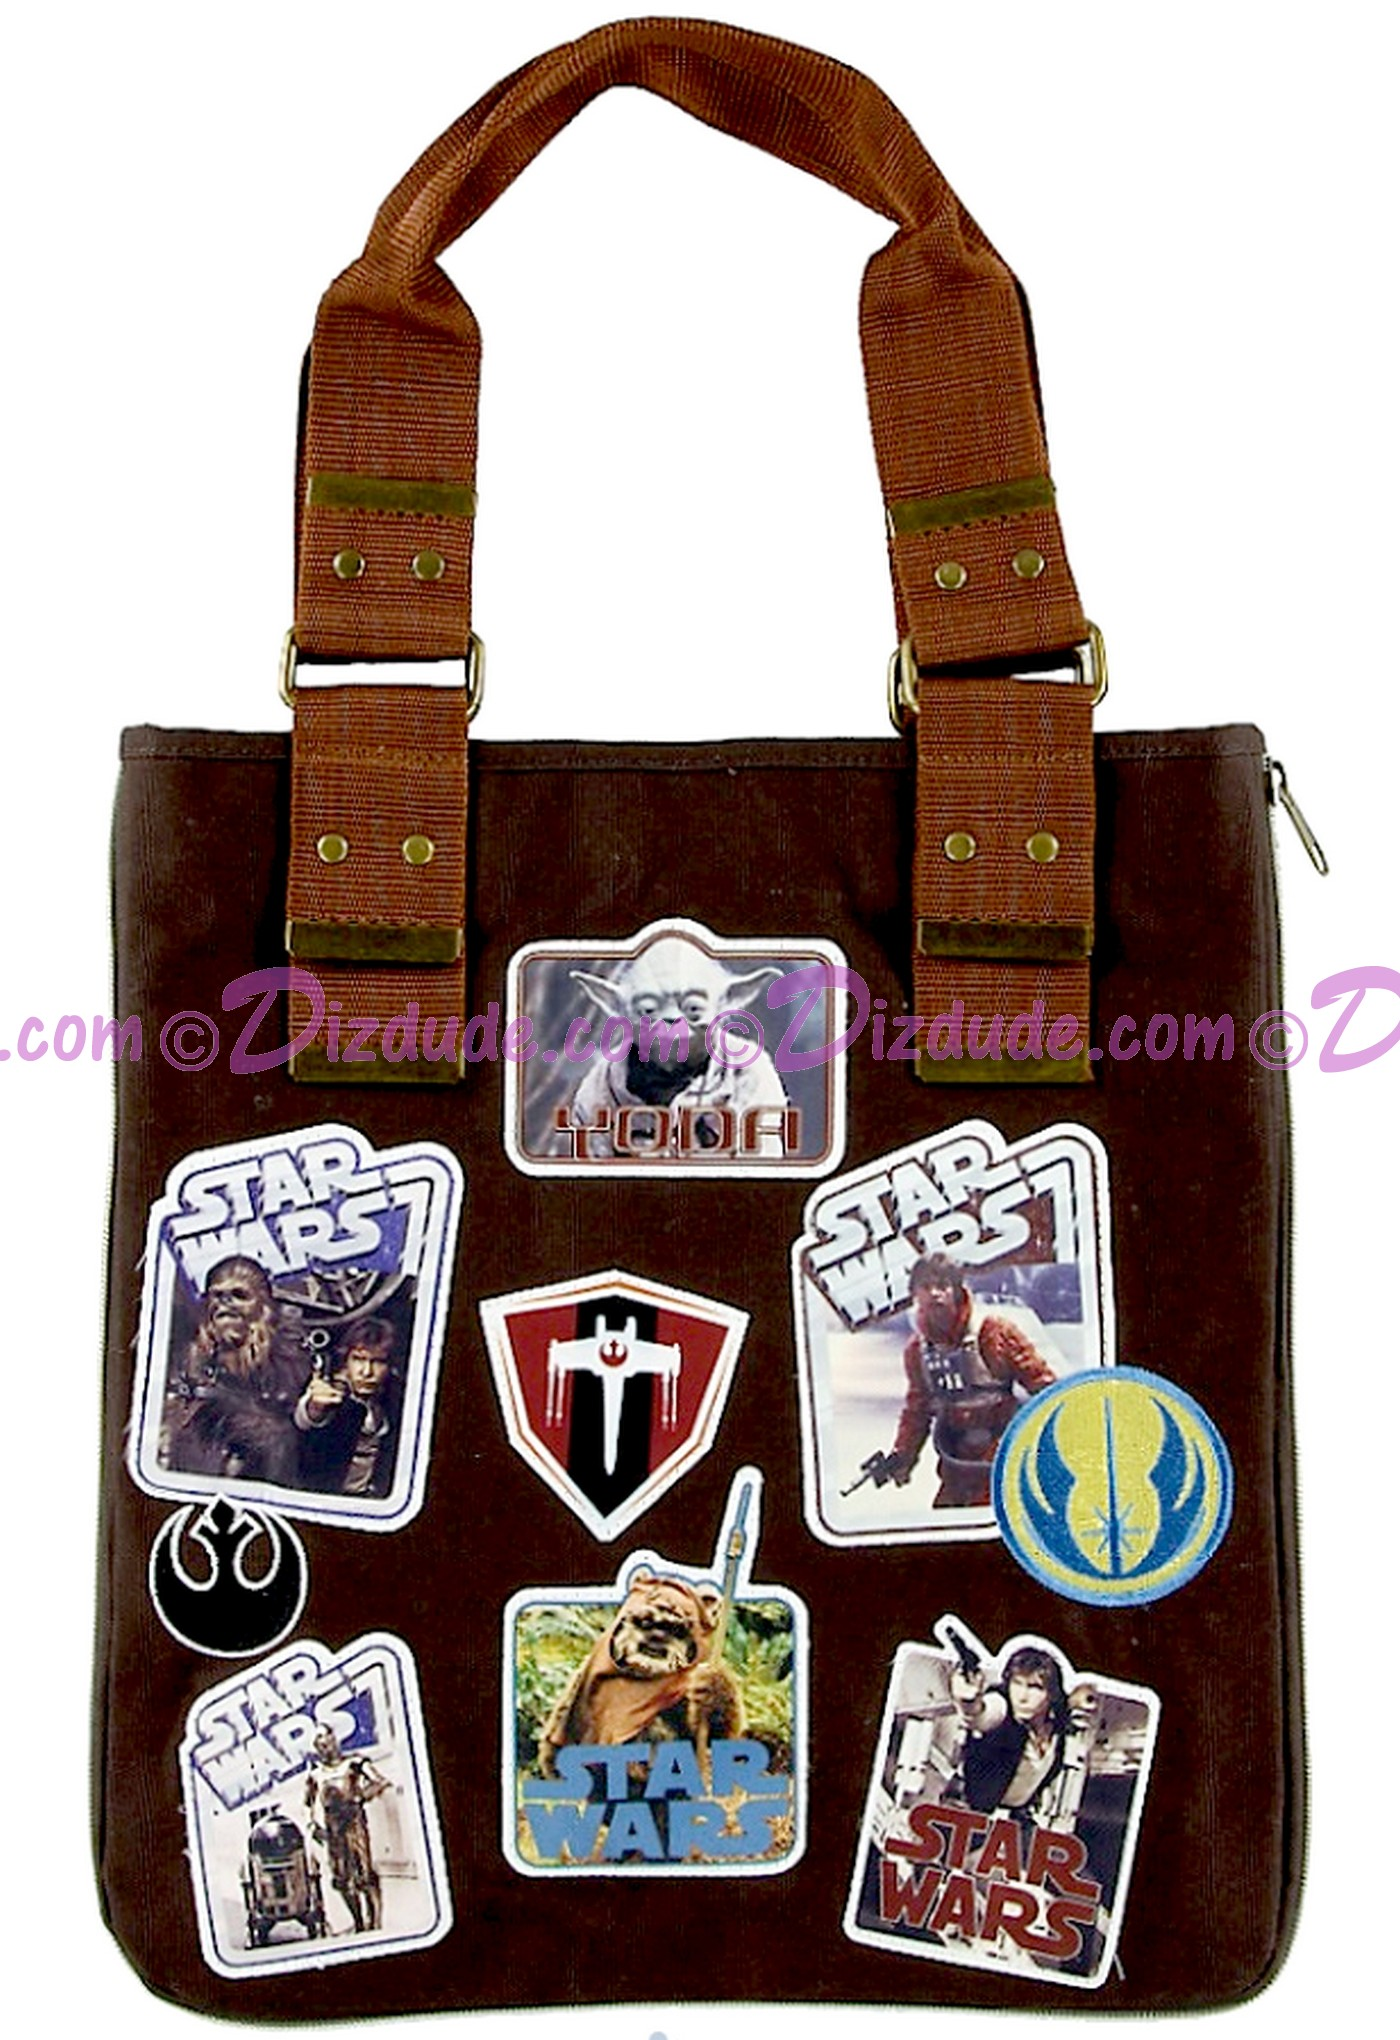 Front of the Disney Star Wars Patches Tote © Dizdude.com